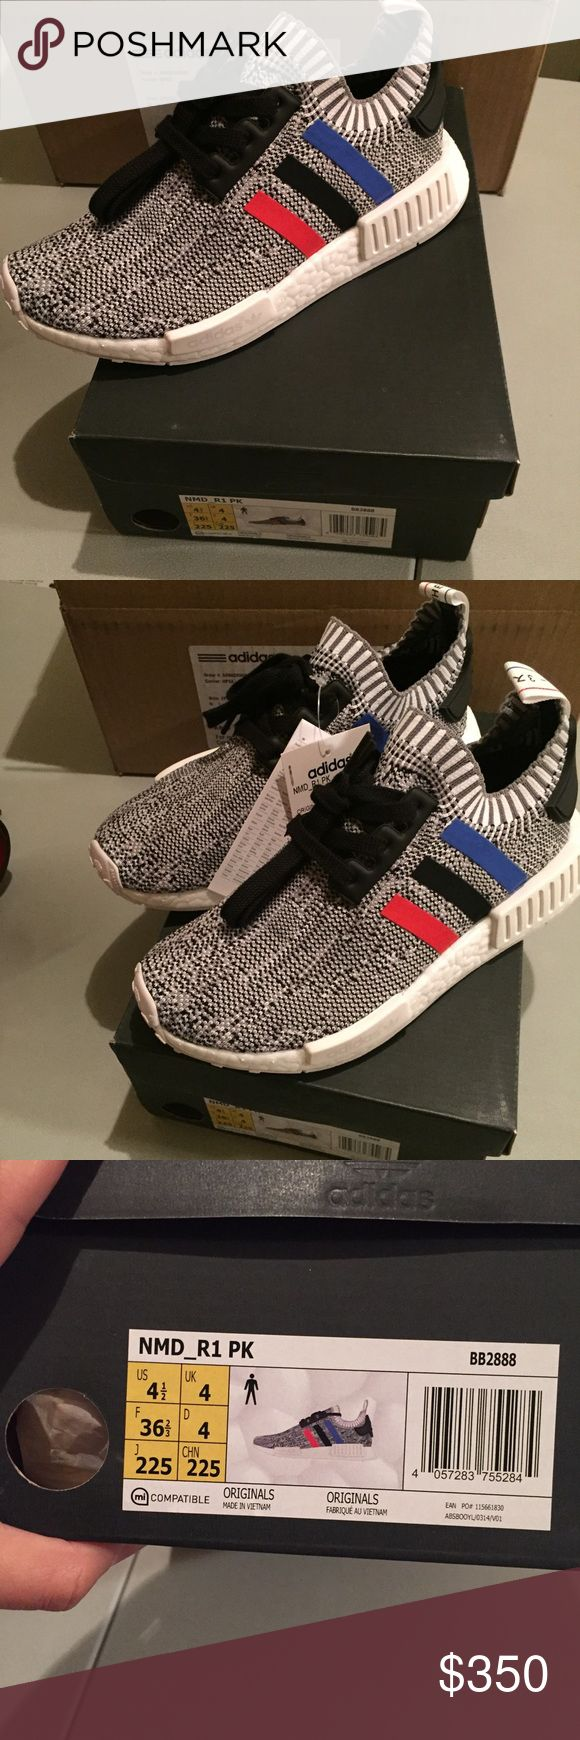 Adidas  NMD_R1 Primeknit Tri-color Adidas NMD Tri - Color, these are authentic men's size 41/2. NMD run big. I'm a size 6 1/2 and they fit great. Never worn brand new with original box and receipt. Will sell on PP for less. Please use offer button. Adidas Shoes Sneakers